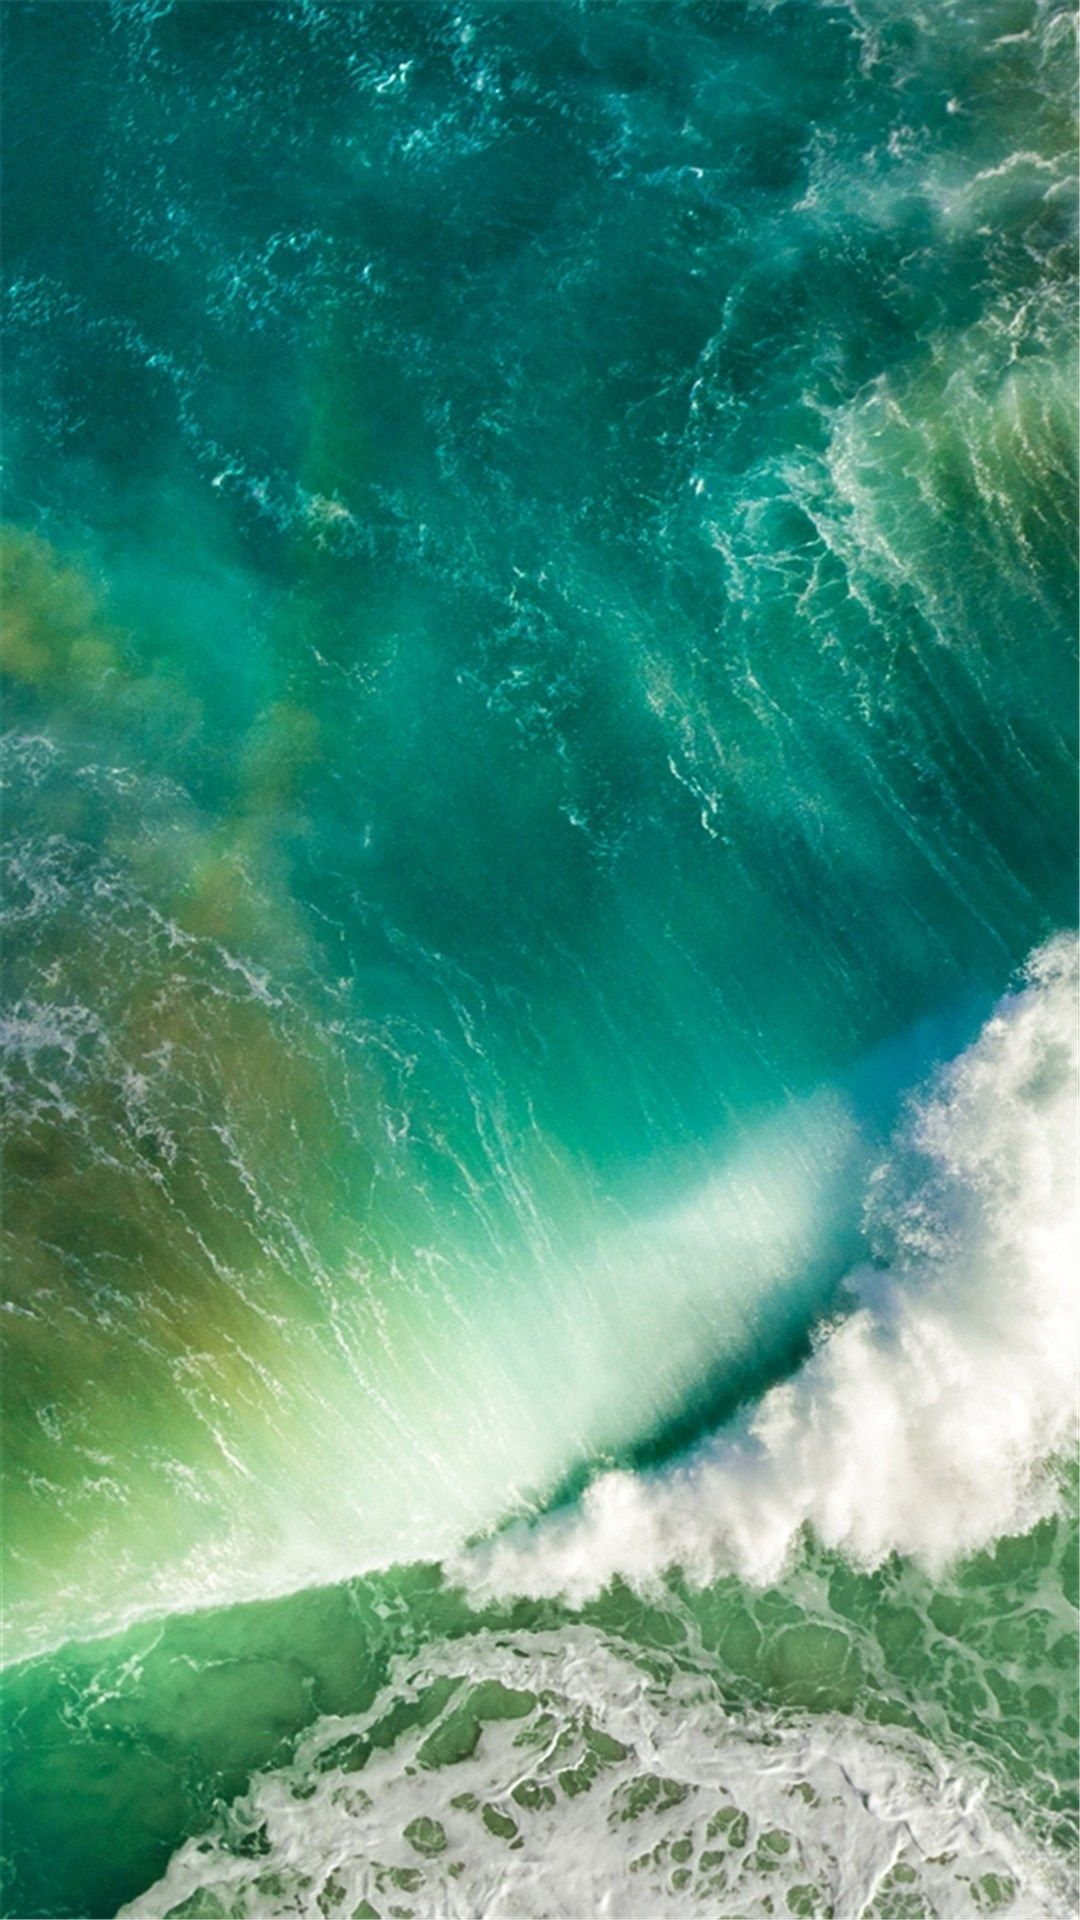 Beach Water Wallpaper Android Download In 2020 Iphone Wallpaper Ios Iphone Wallpaper Ios 10 Ios 11 Wallpaper